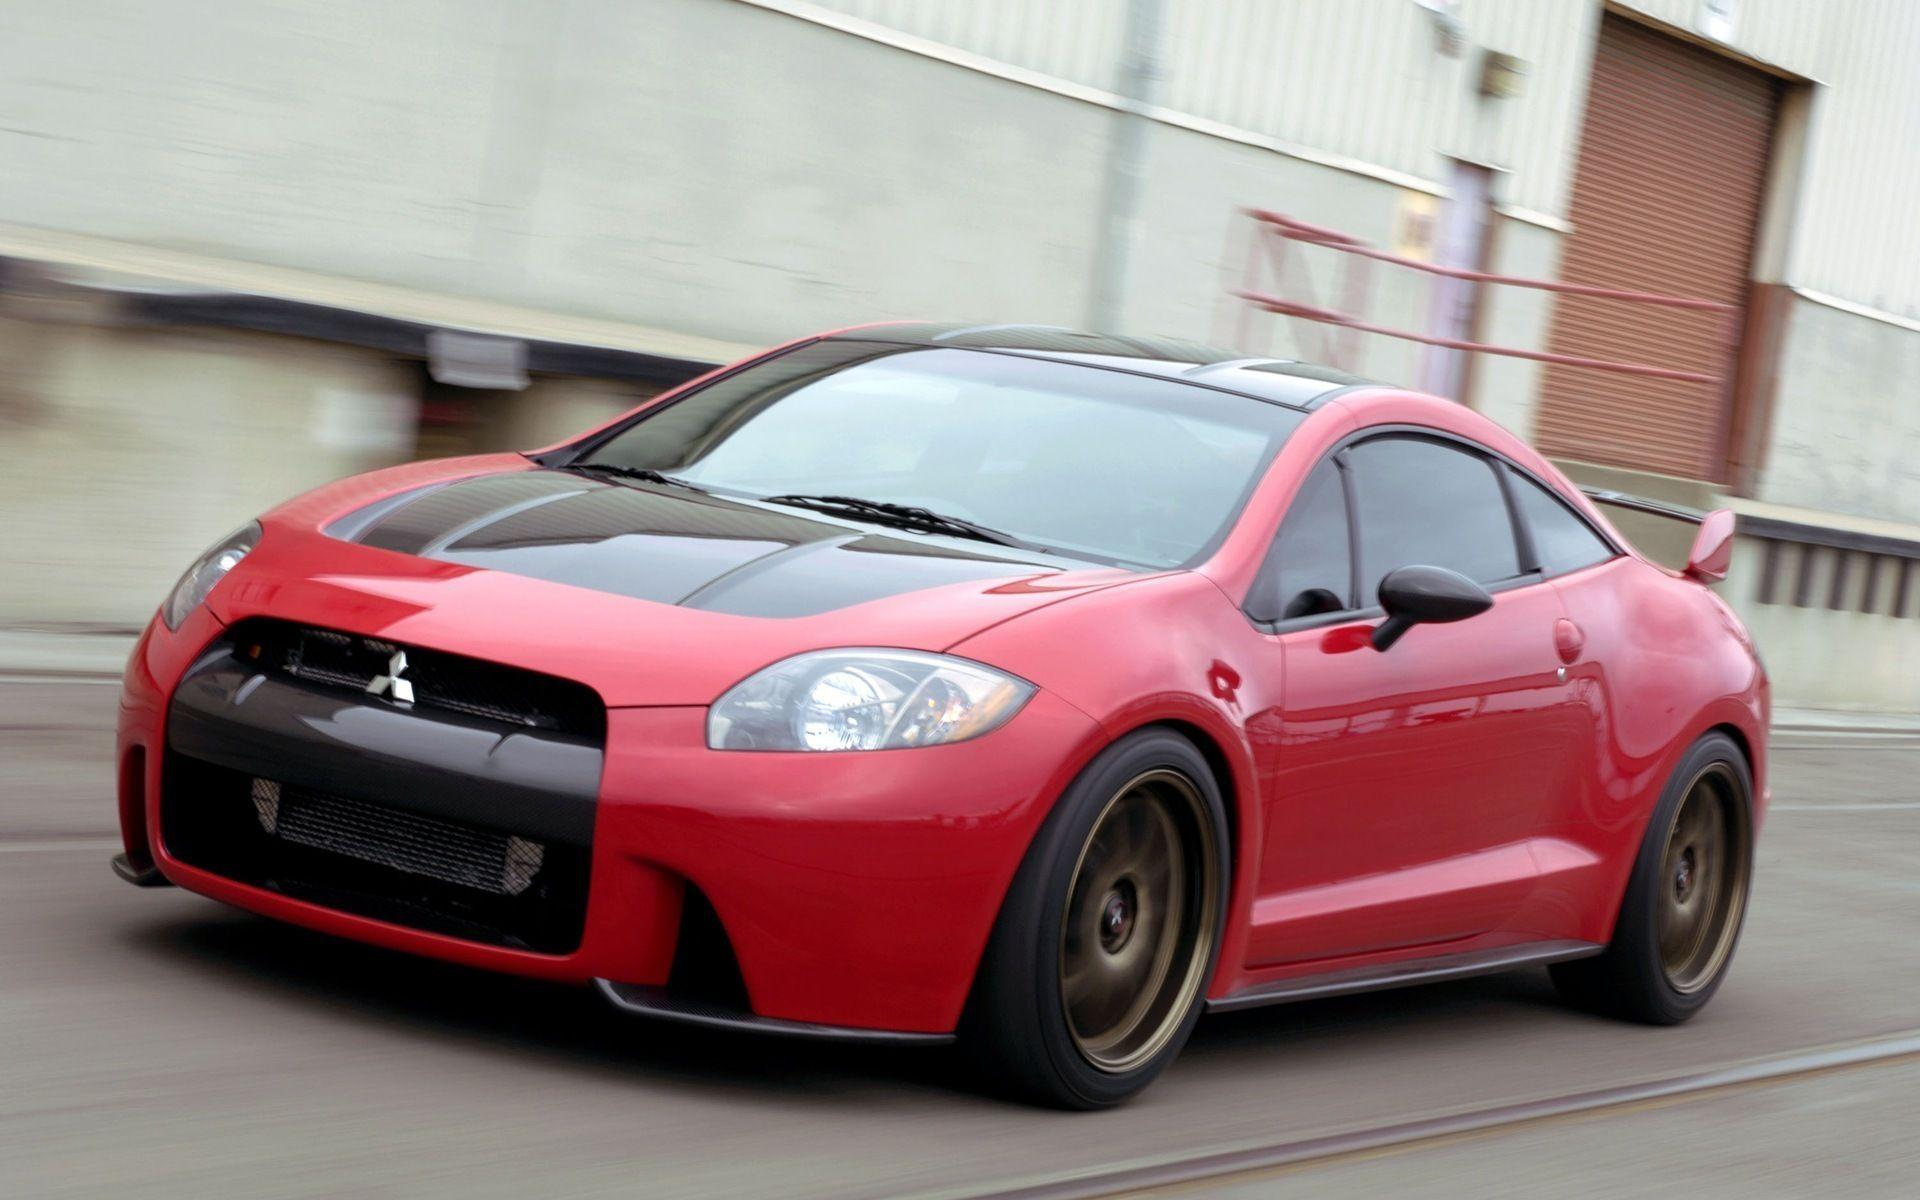 Mitsubishi Eclipse Wallpapers - Wallpaper Cave Mitsubishi Eclipse 3g Wallpaper